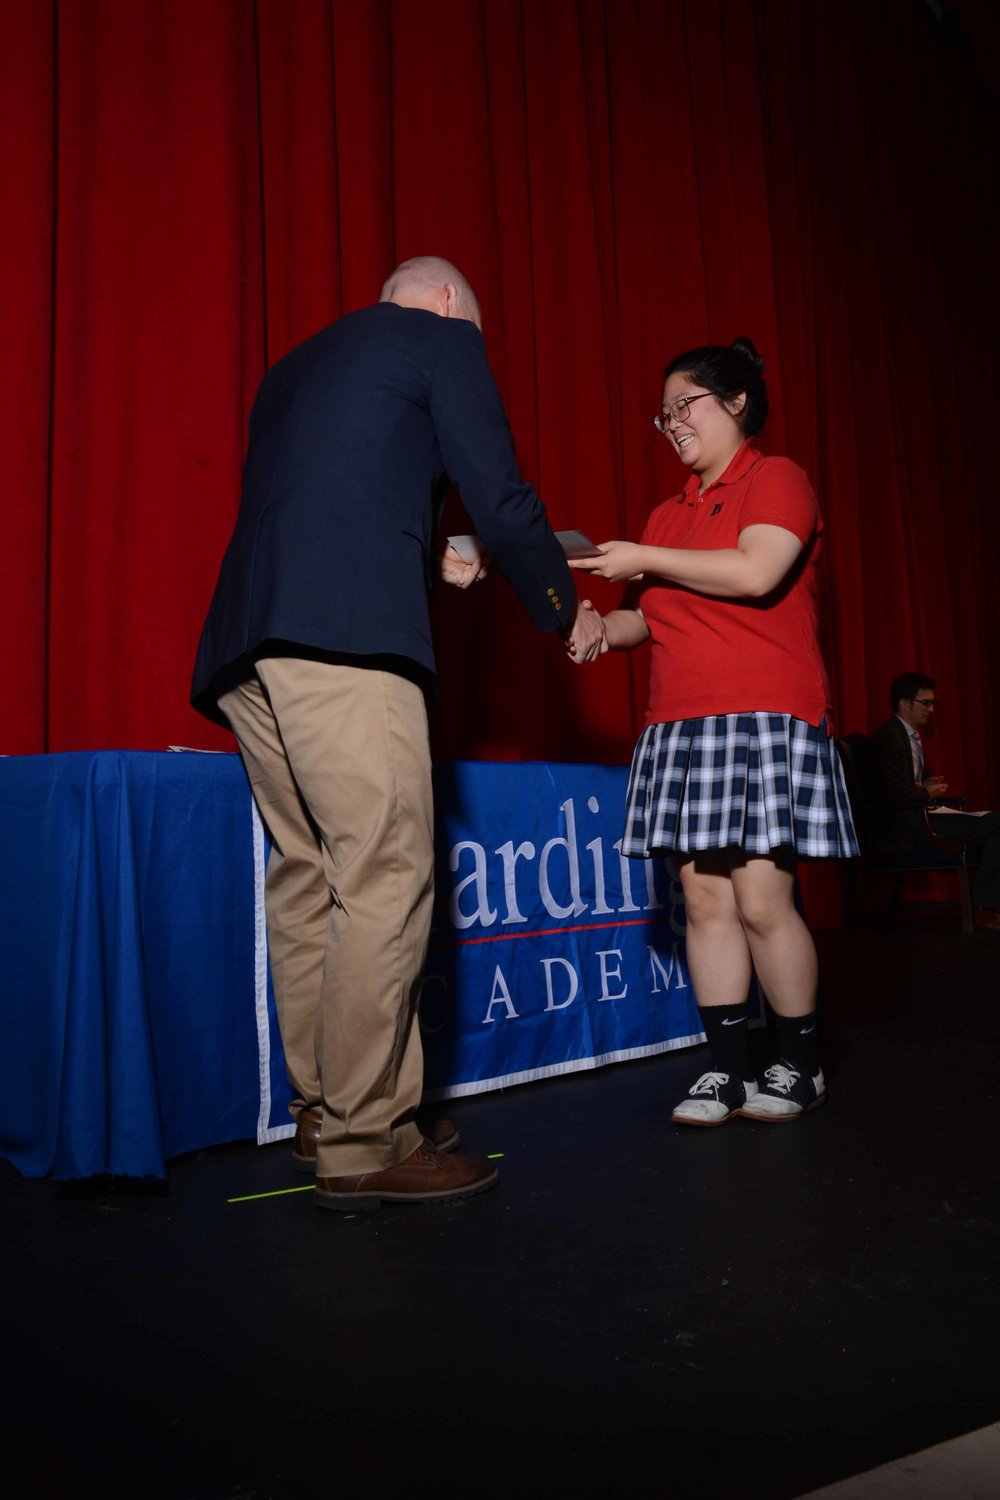 April25 AcademicAwards116.jpg